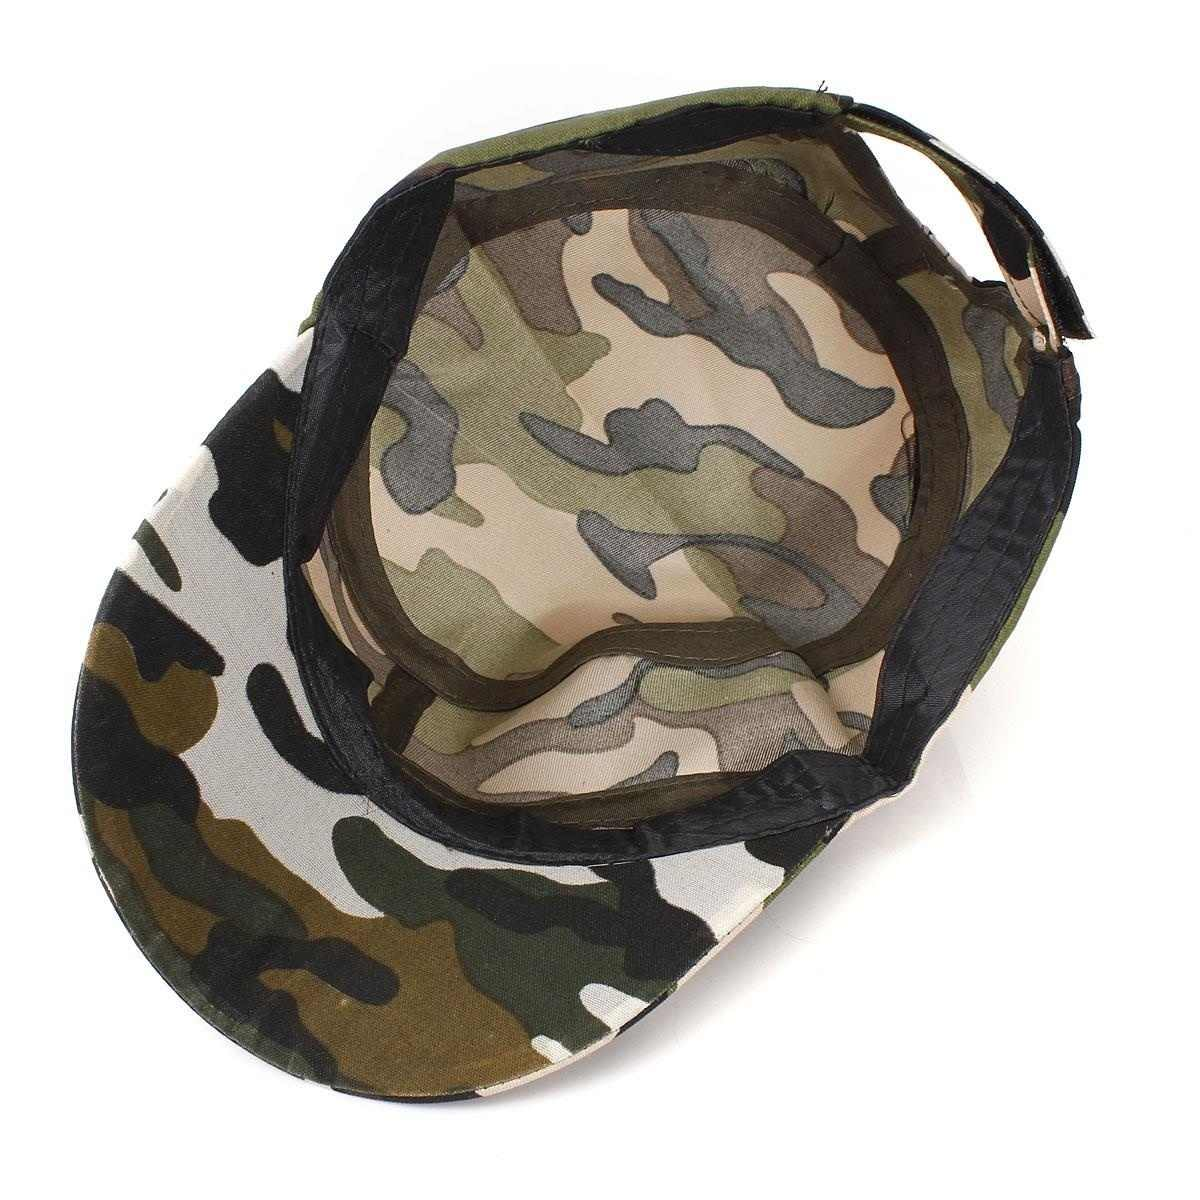 a15c43a7b2dc8 ... Army Military Camouflage Tatical Cap Airsoft Paintball Outdoor Hunting  Baseball Caps Women Men Multicam Soldier Combat